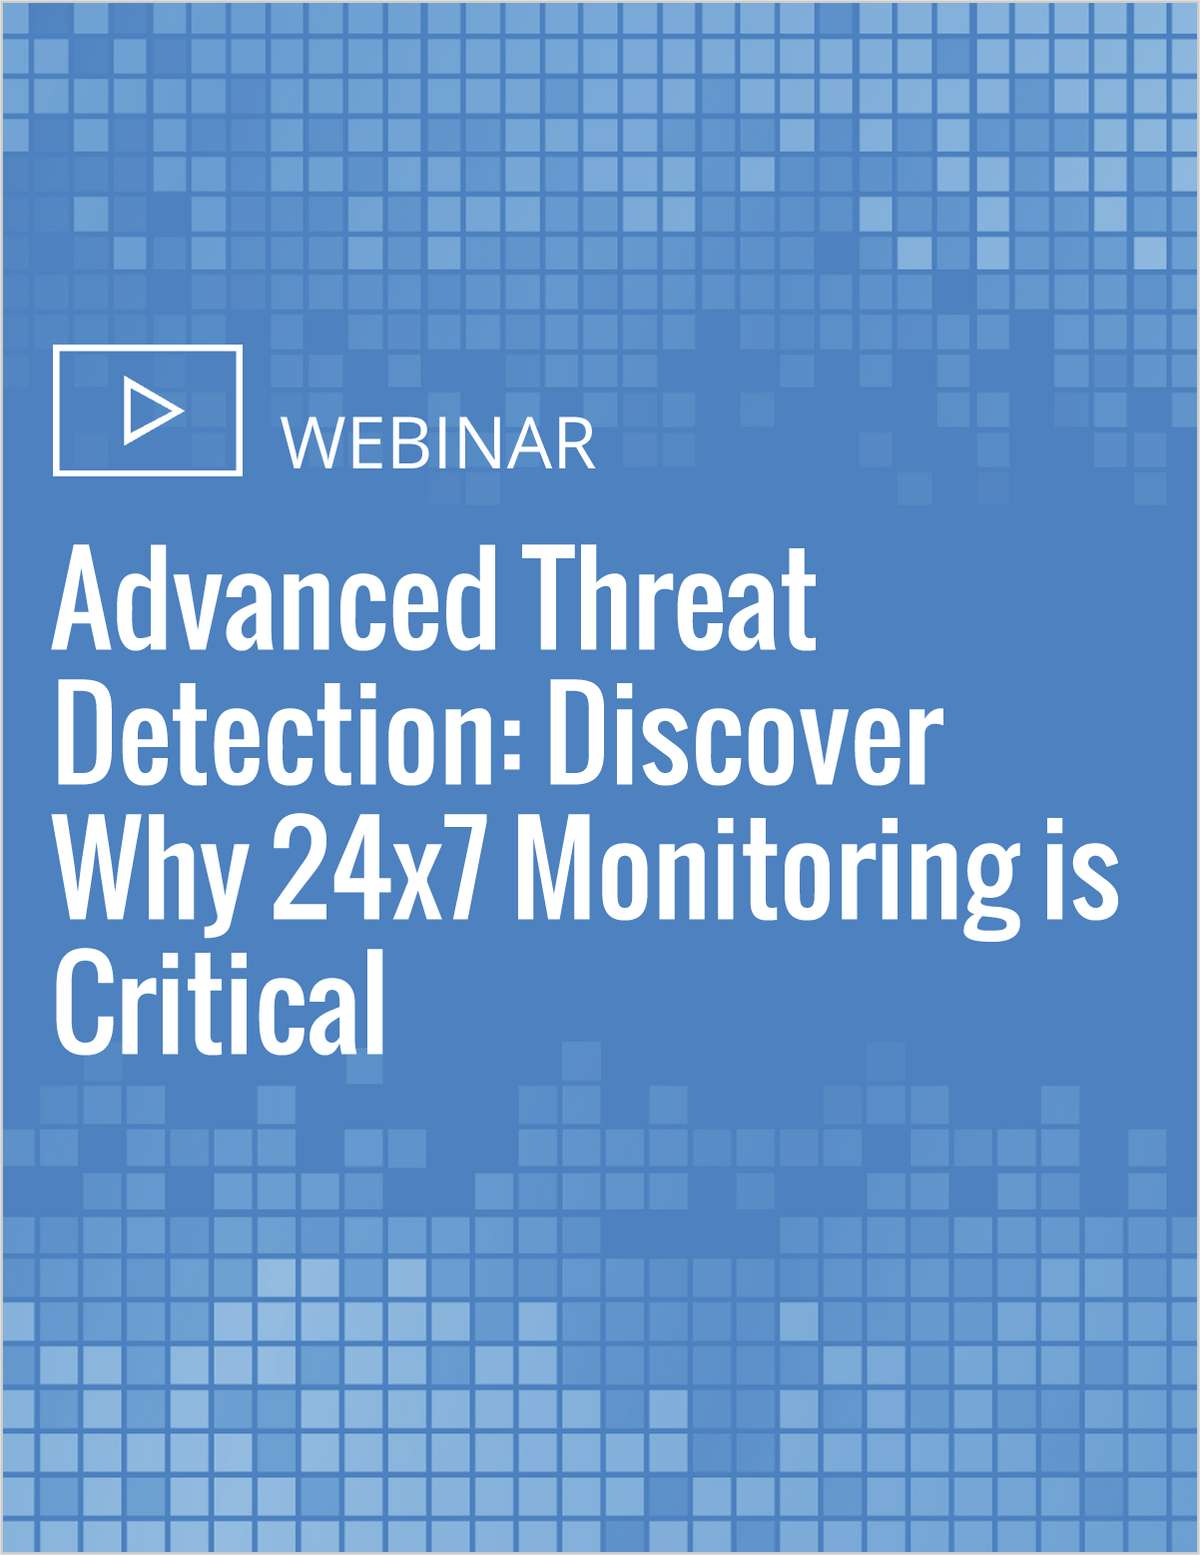 Advanced Threat Detection: Discover Why 24x7 Monitoring is Critical